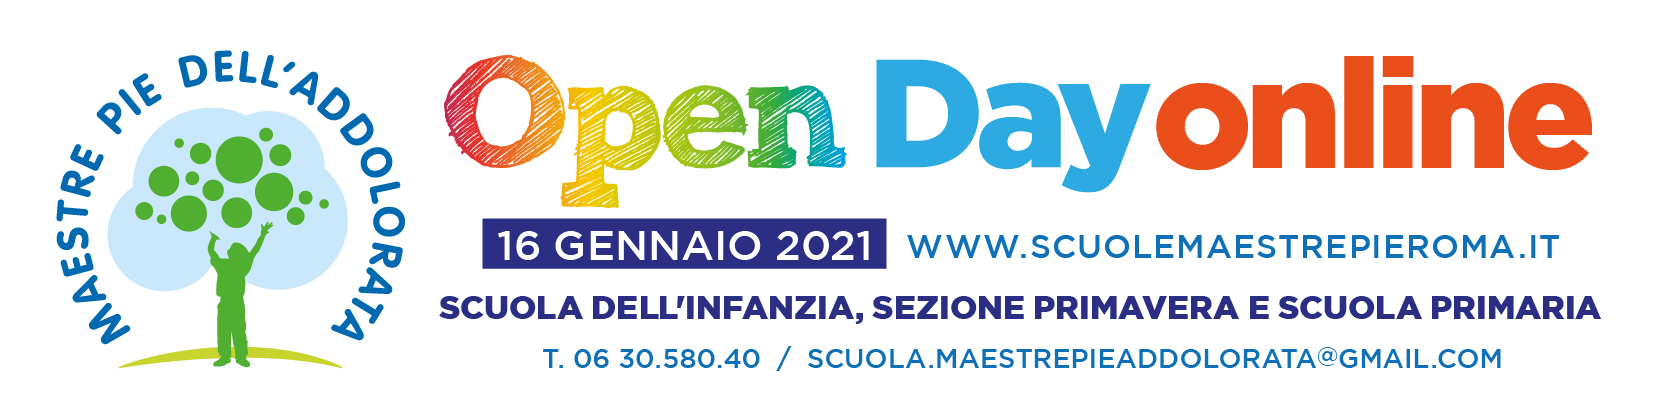 striscione openday-2021